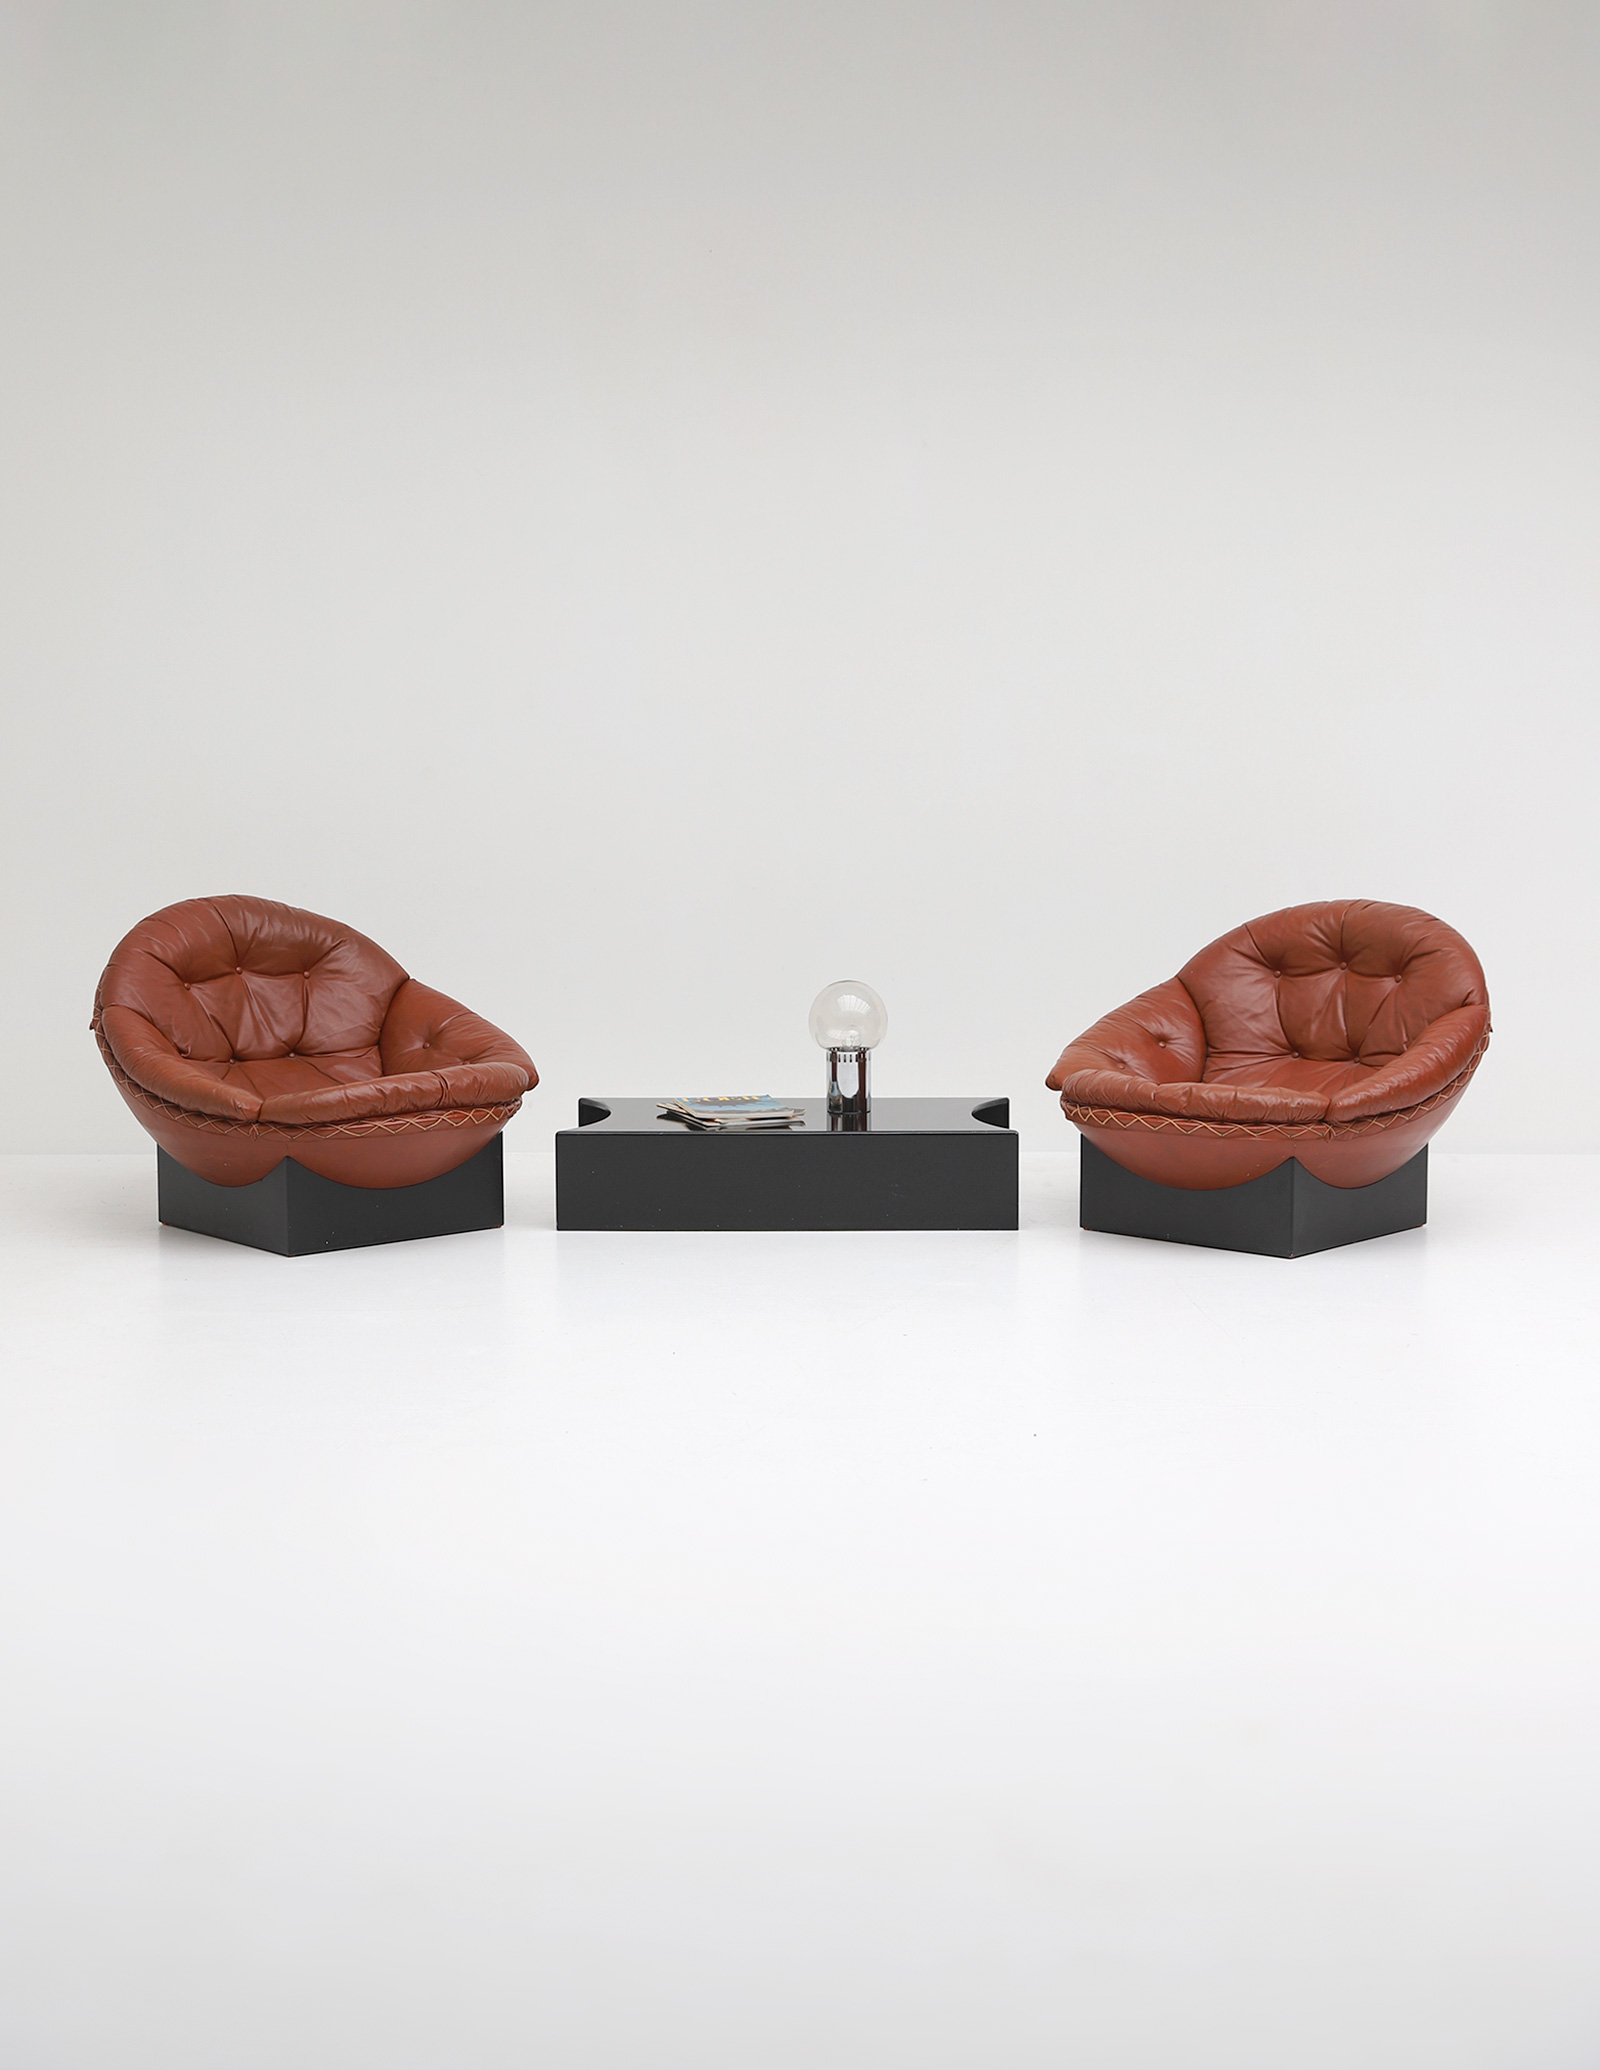 Leather Lounge Chairs by Illum Wikkelso for Ryesberg 1970simage 11